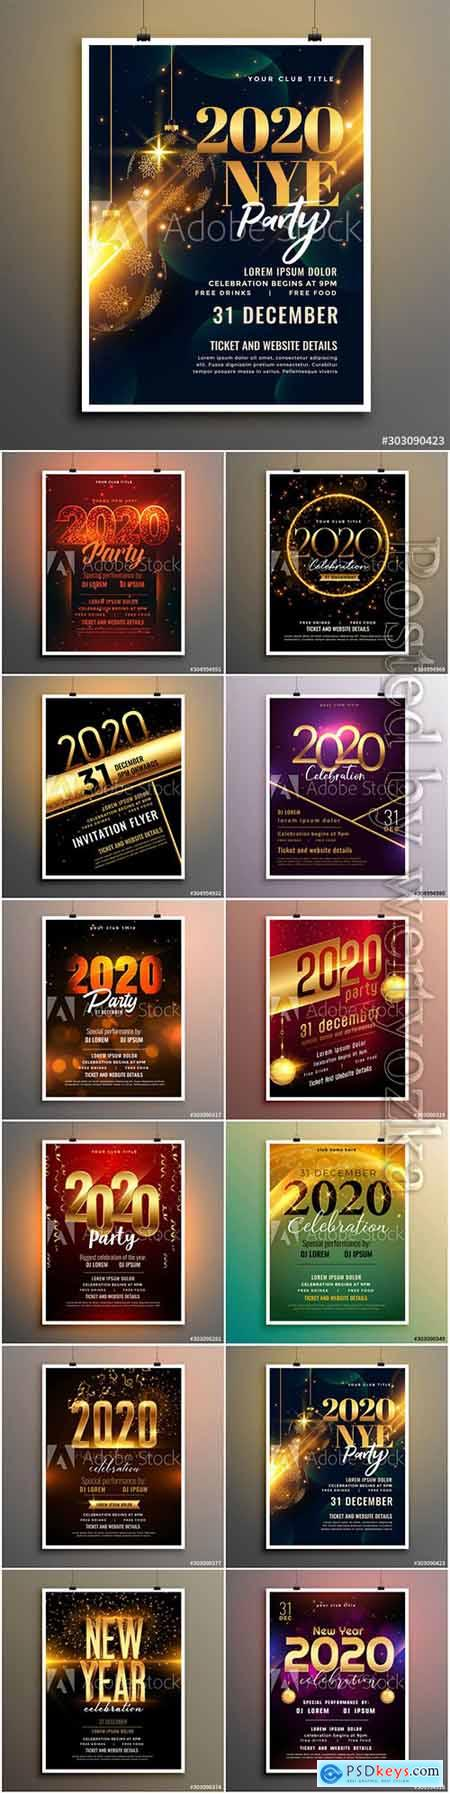 New year party celebration cover flyer template design